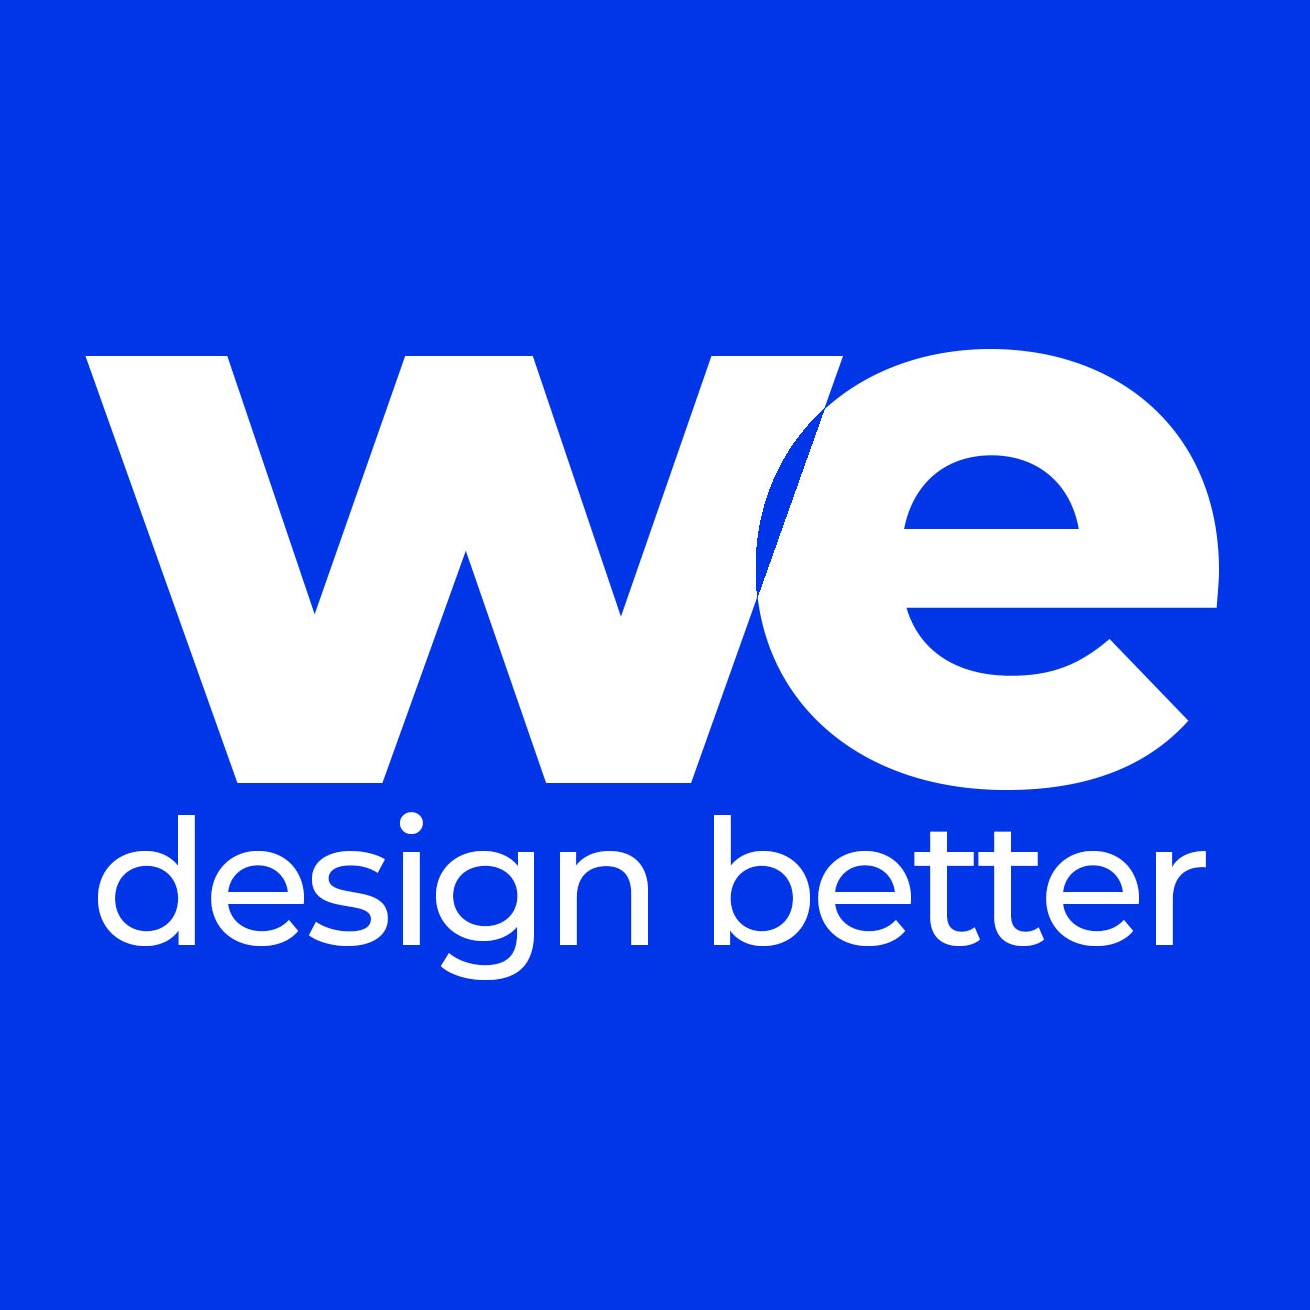 We Design better